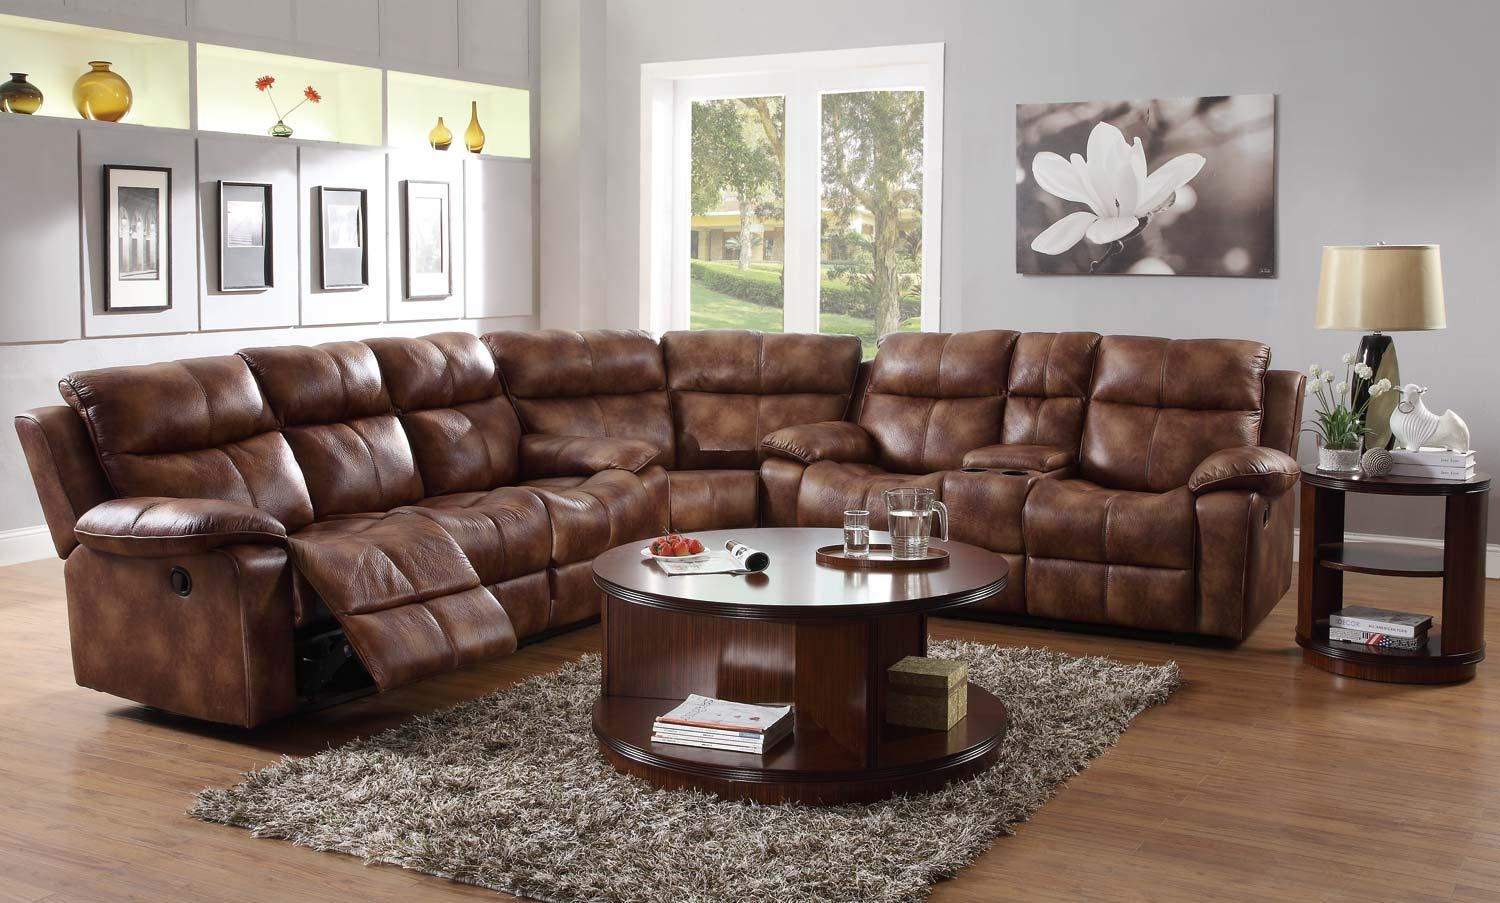 Sofas Center : Midtown Motion Sectional 1 Buyctional Sofas And For Motion Sectional Sofas (Image 14 of 20)